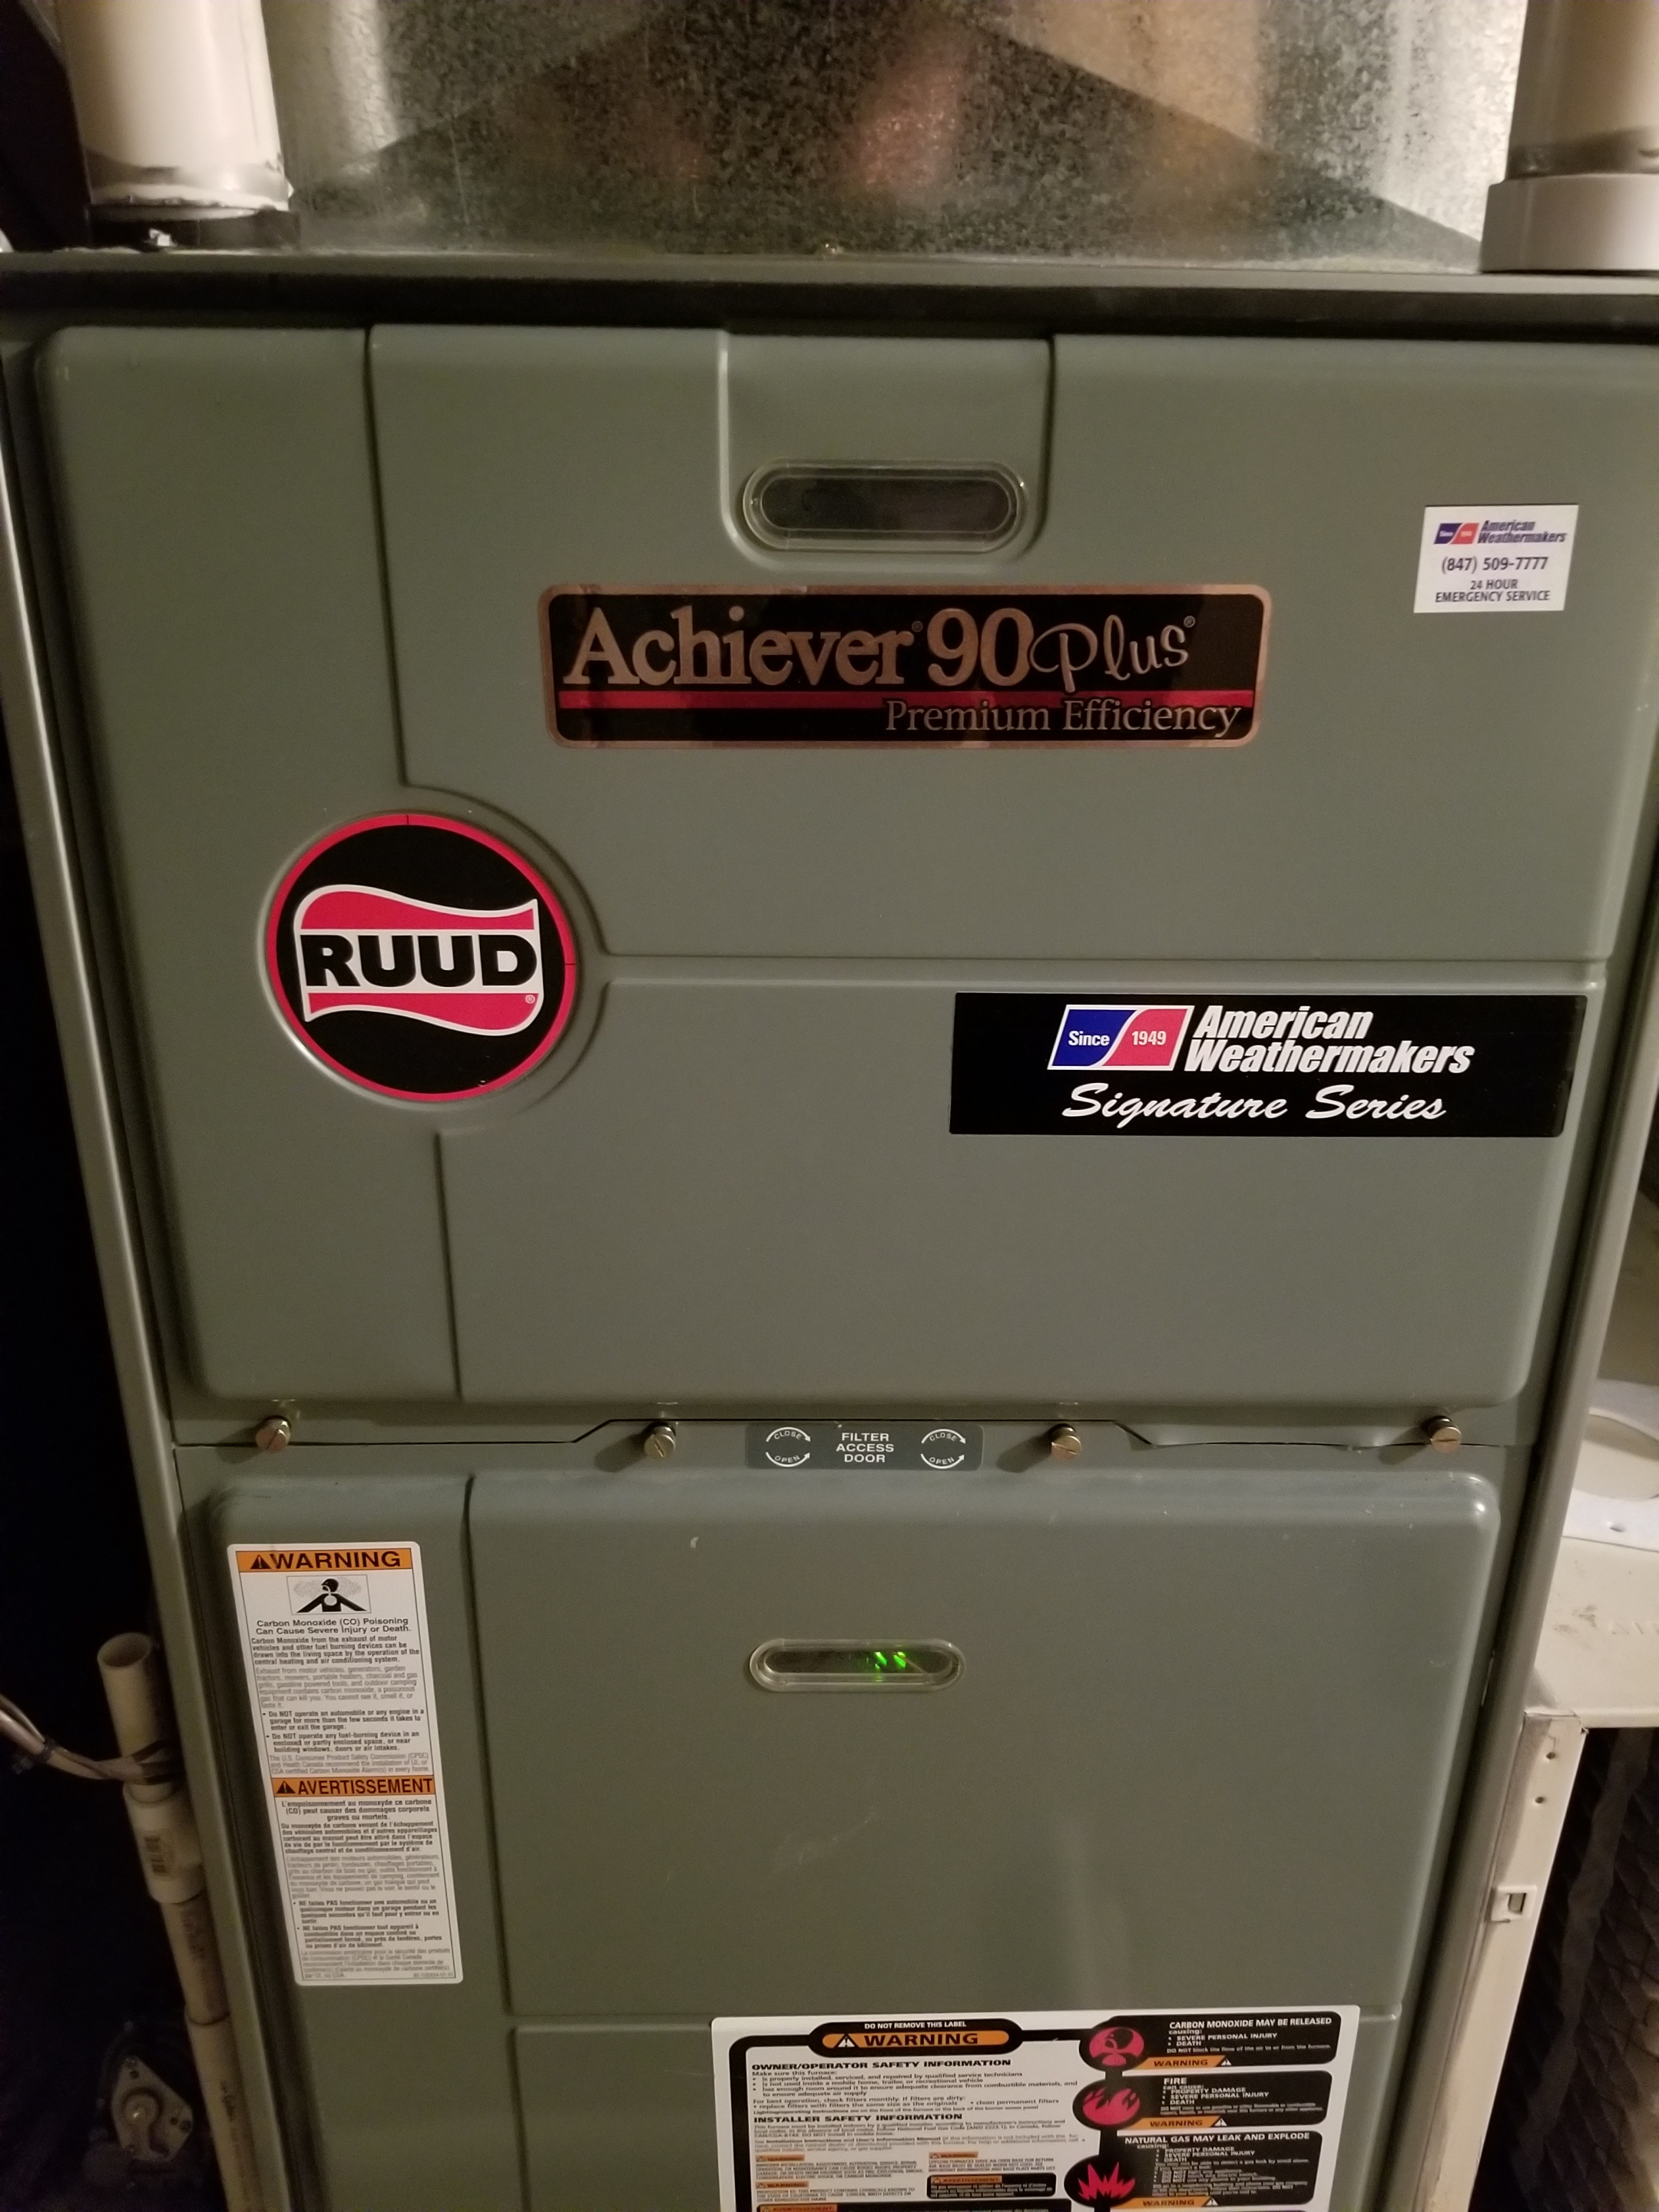 Performed annual maintenance on the Ruud furnace and Aprilaire humidifier and made adjustments to improve the overall efficiency and life expectancy of the equipment